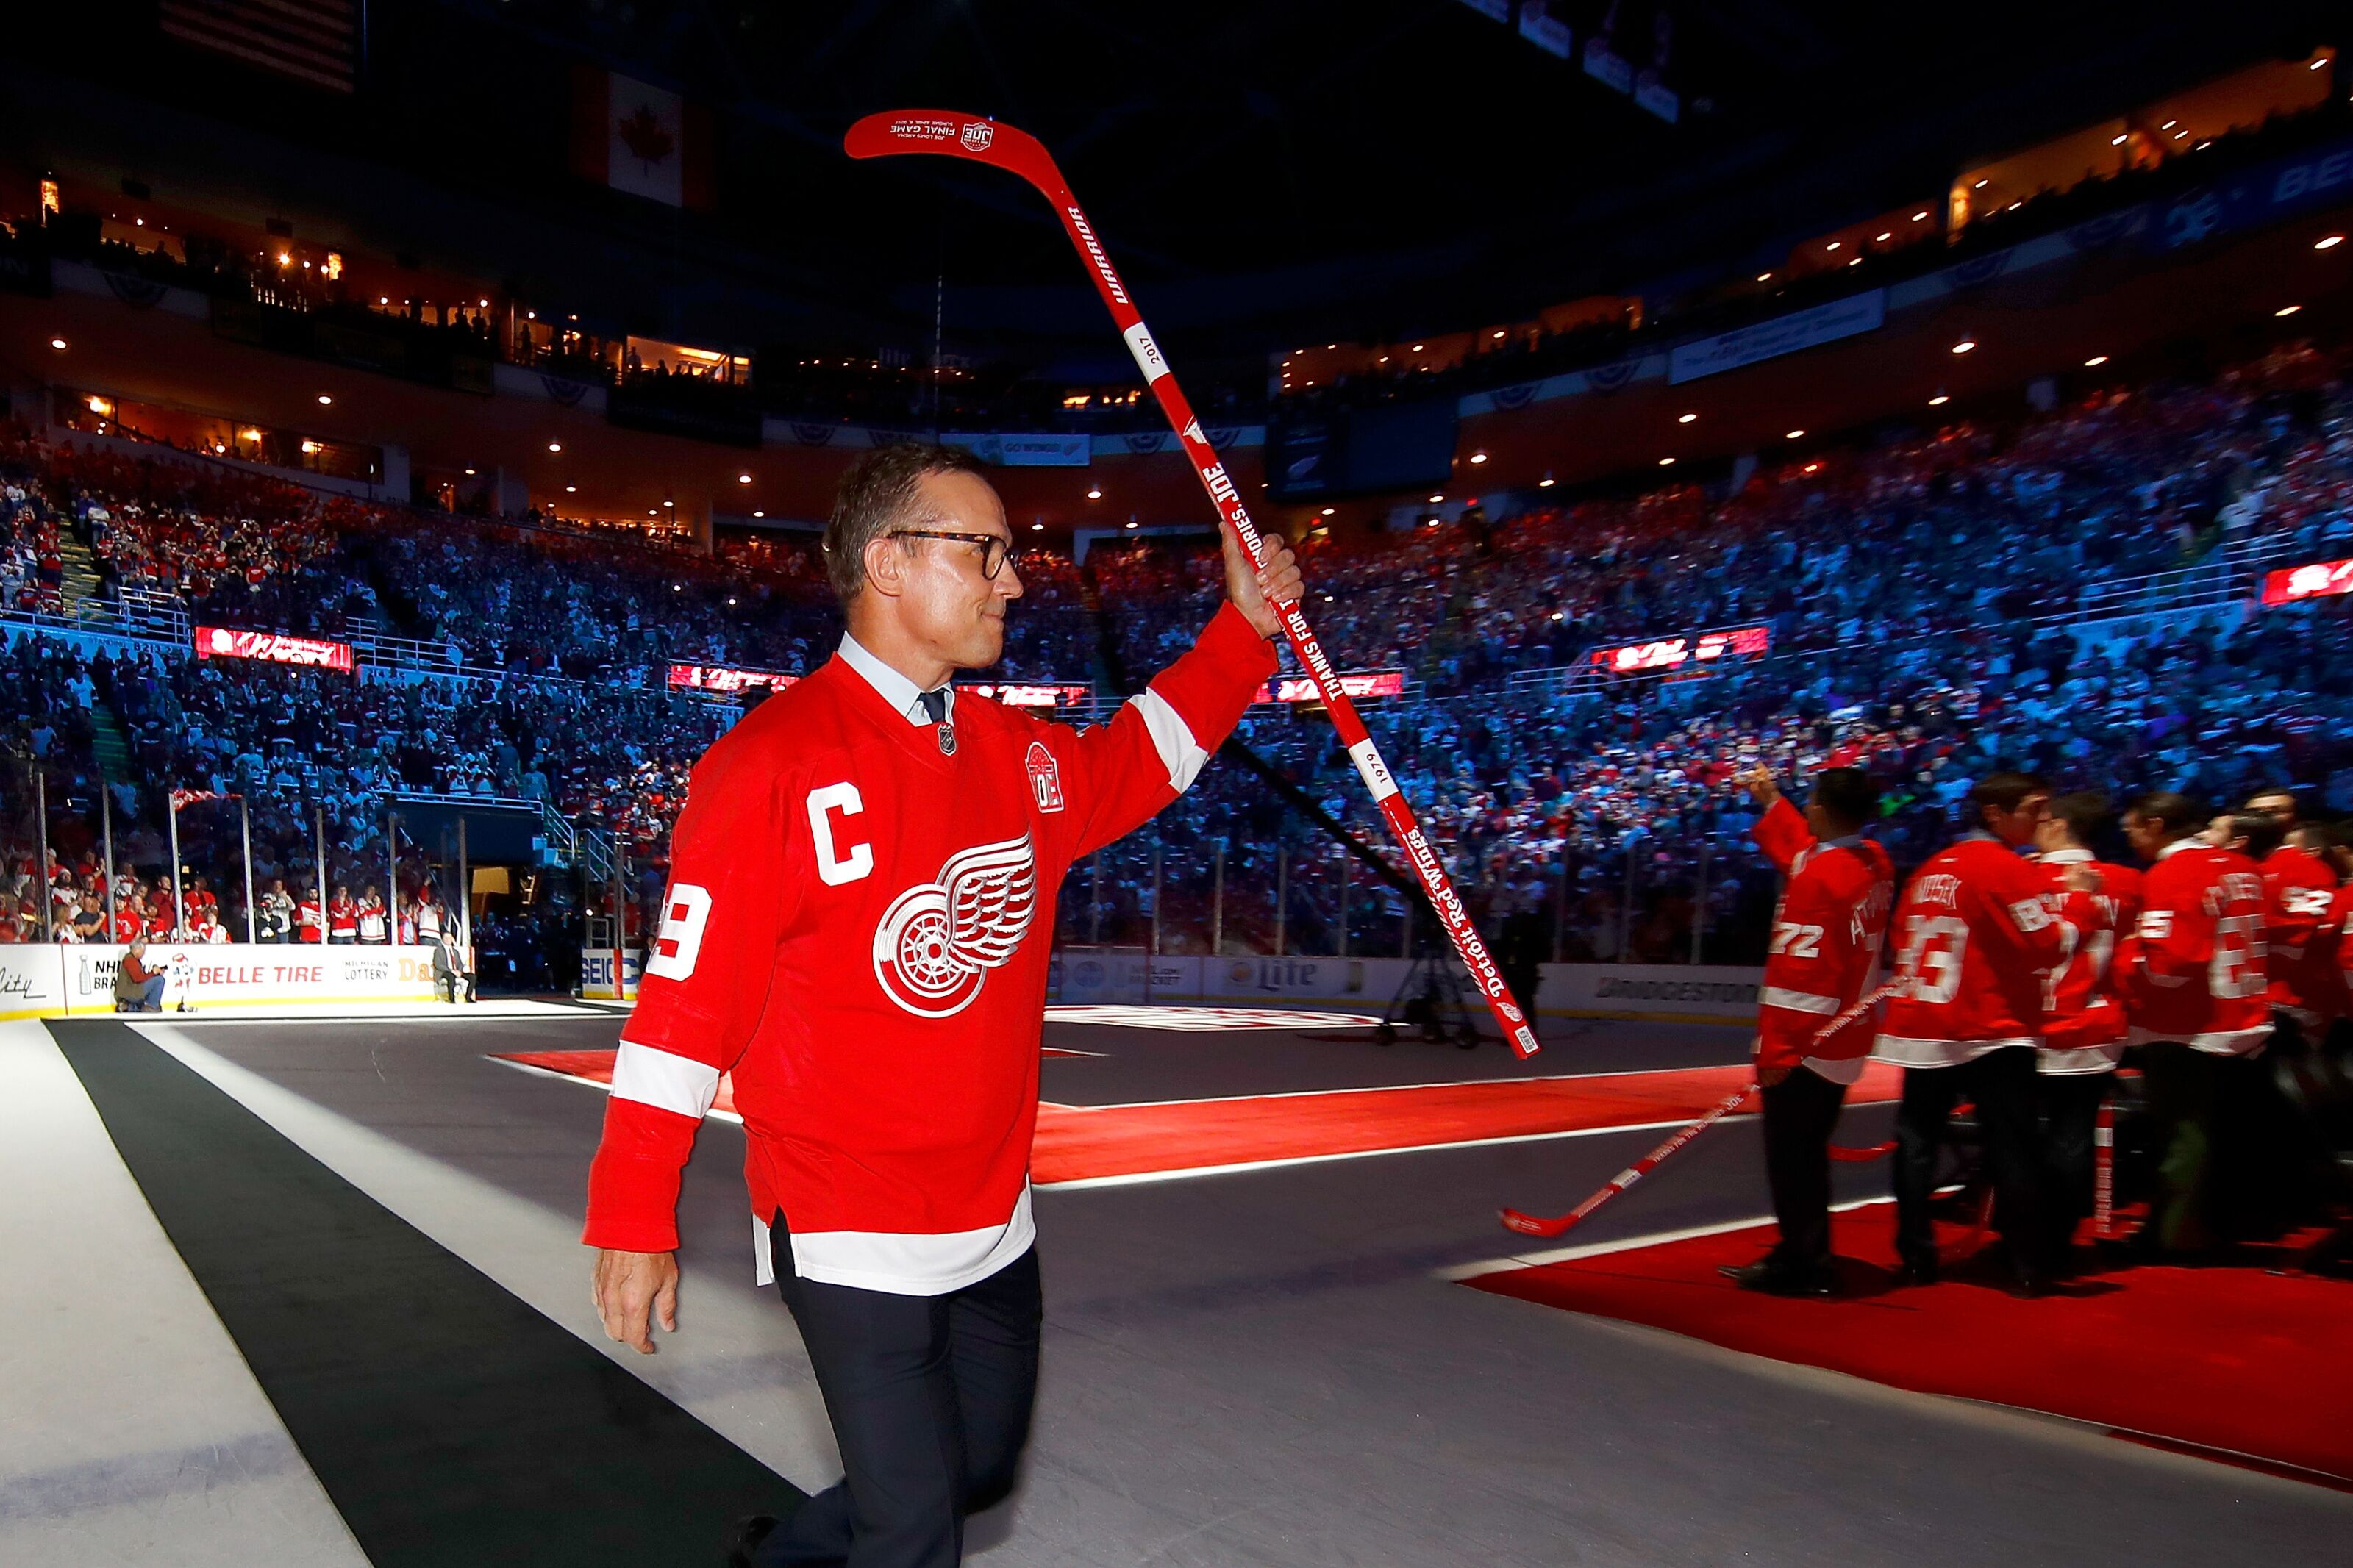 Detroit Red Wings: He's coming home Steve Yzerman is coming home!